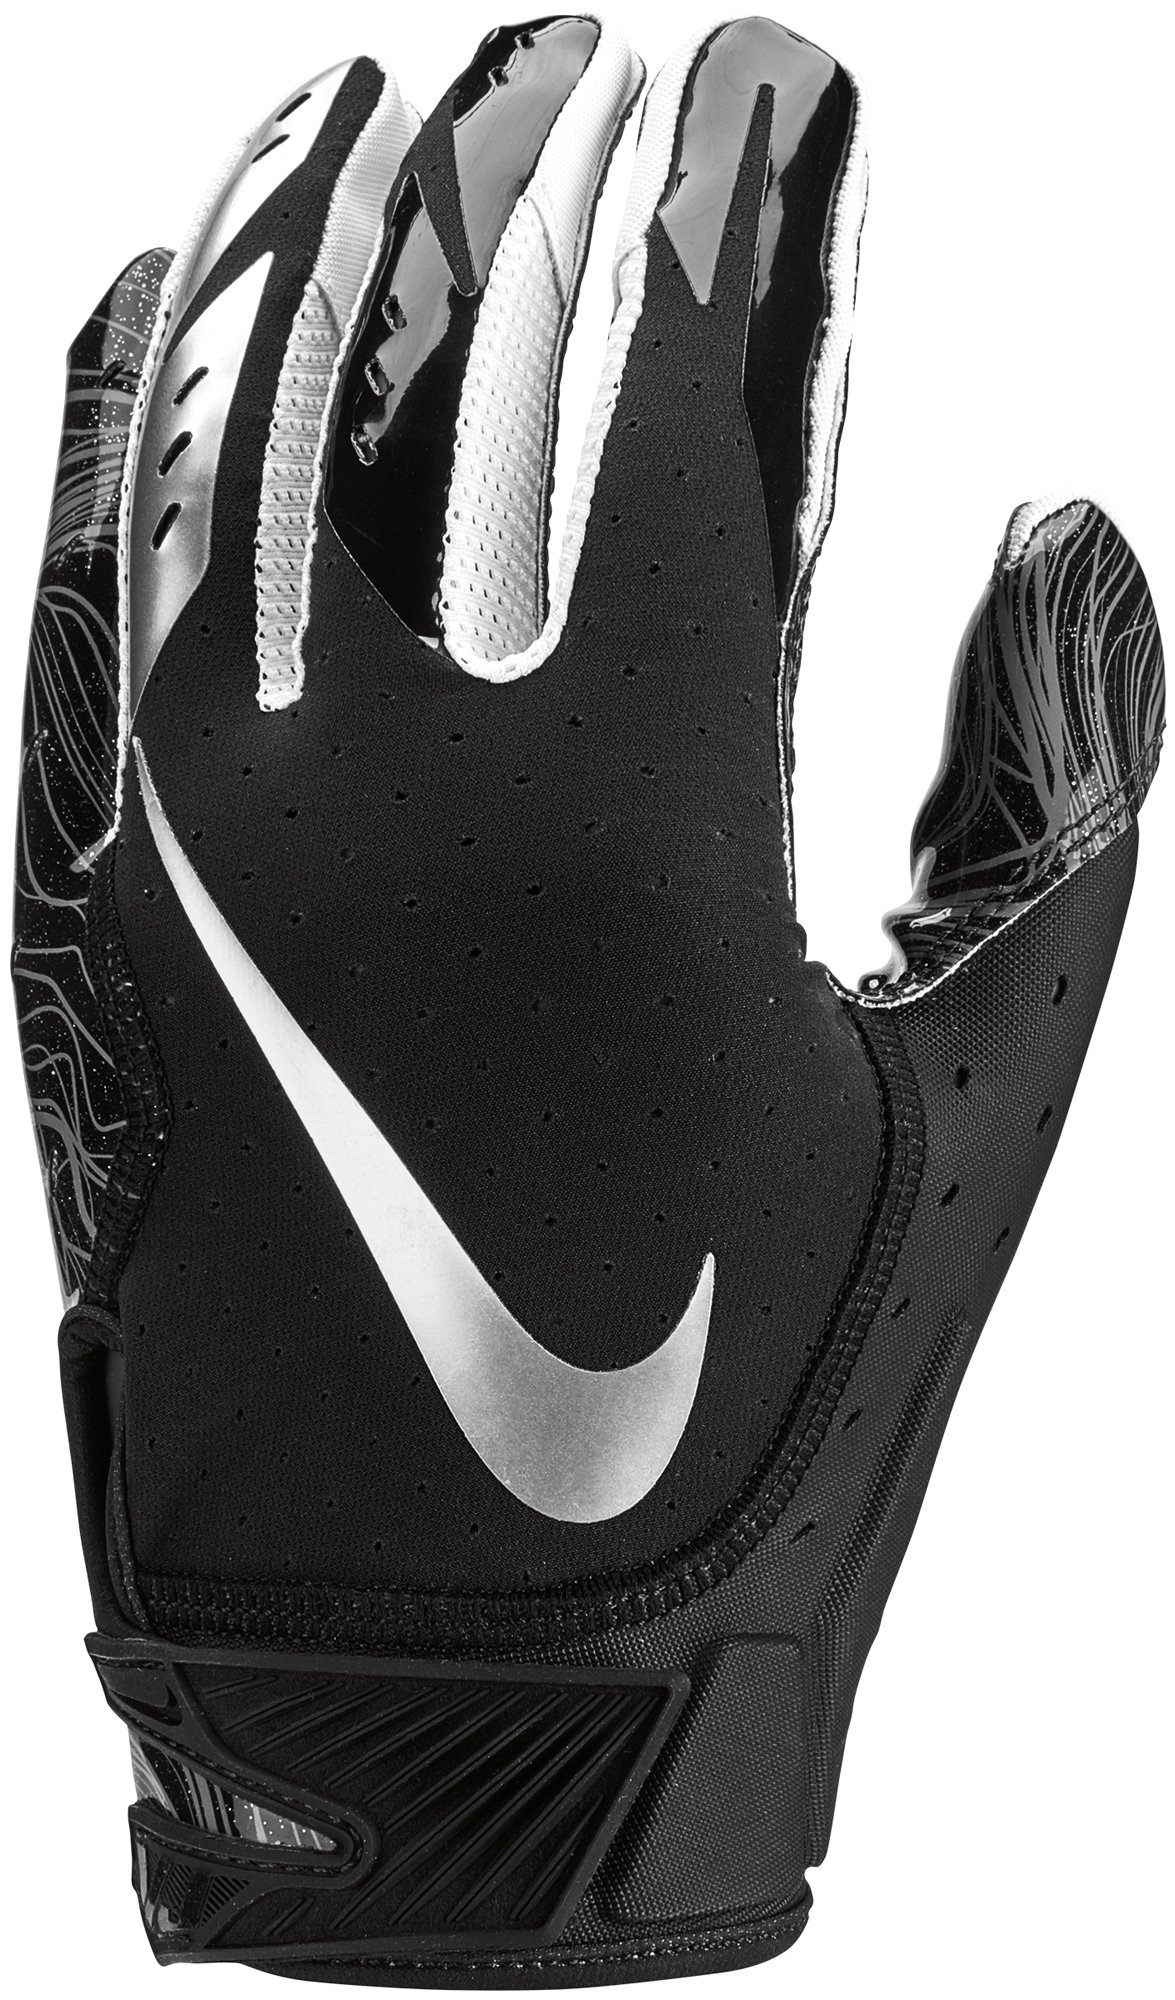 Men's Nike Vapor Jet 5.0 Football Gloves Black/Chrome Size Small